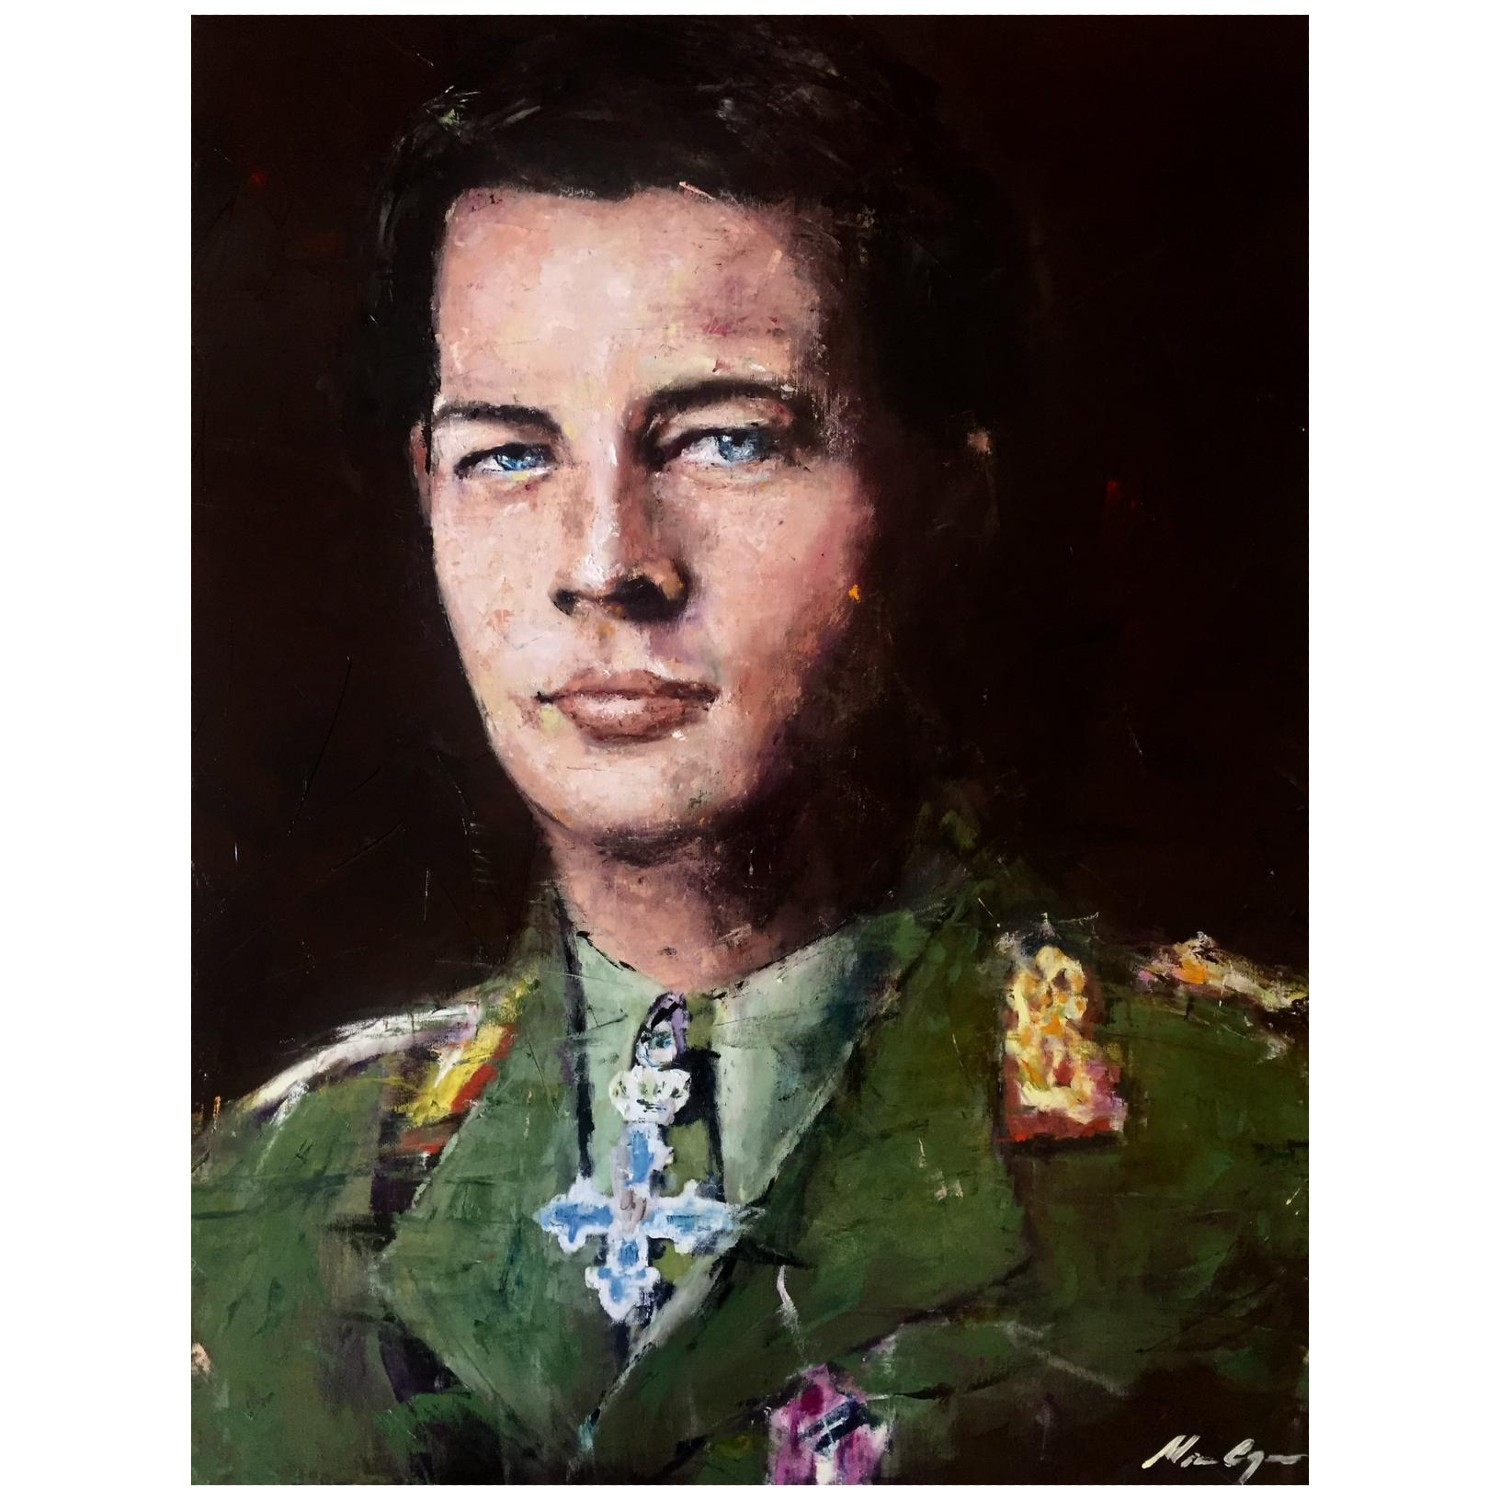 The King_Tablou Panza_Acril pe panza_painting_RafGallery_romanian_art_VR_gallery_shop_360